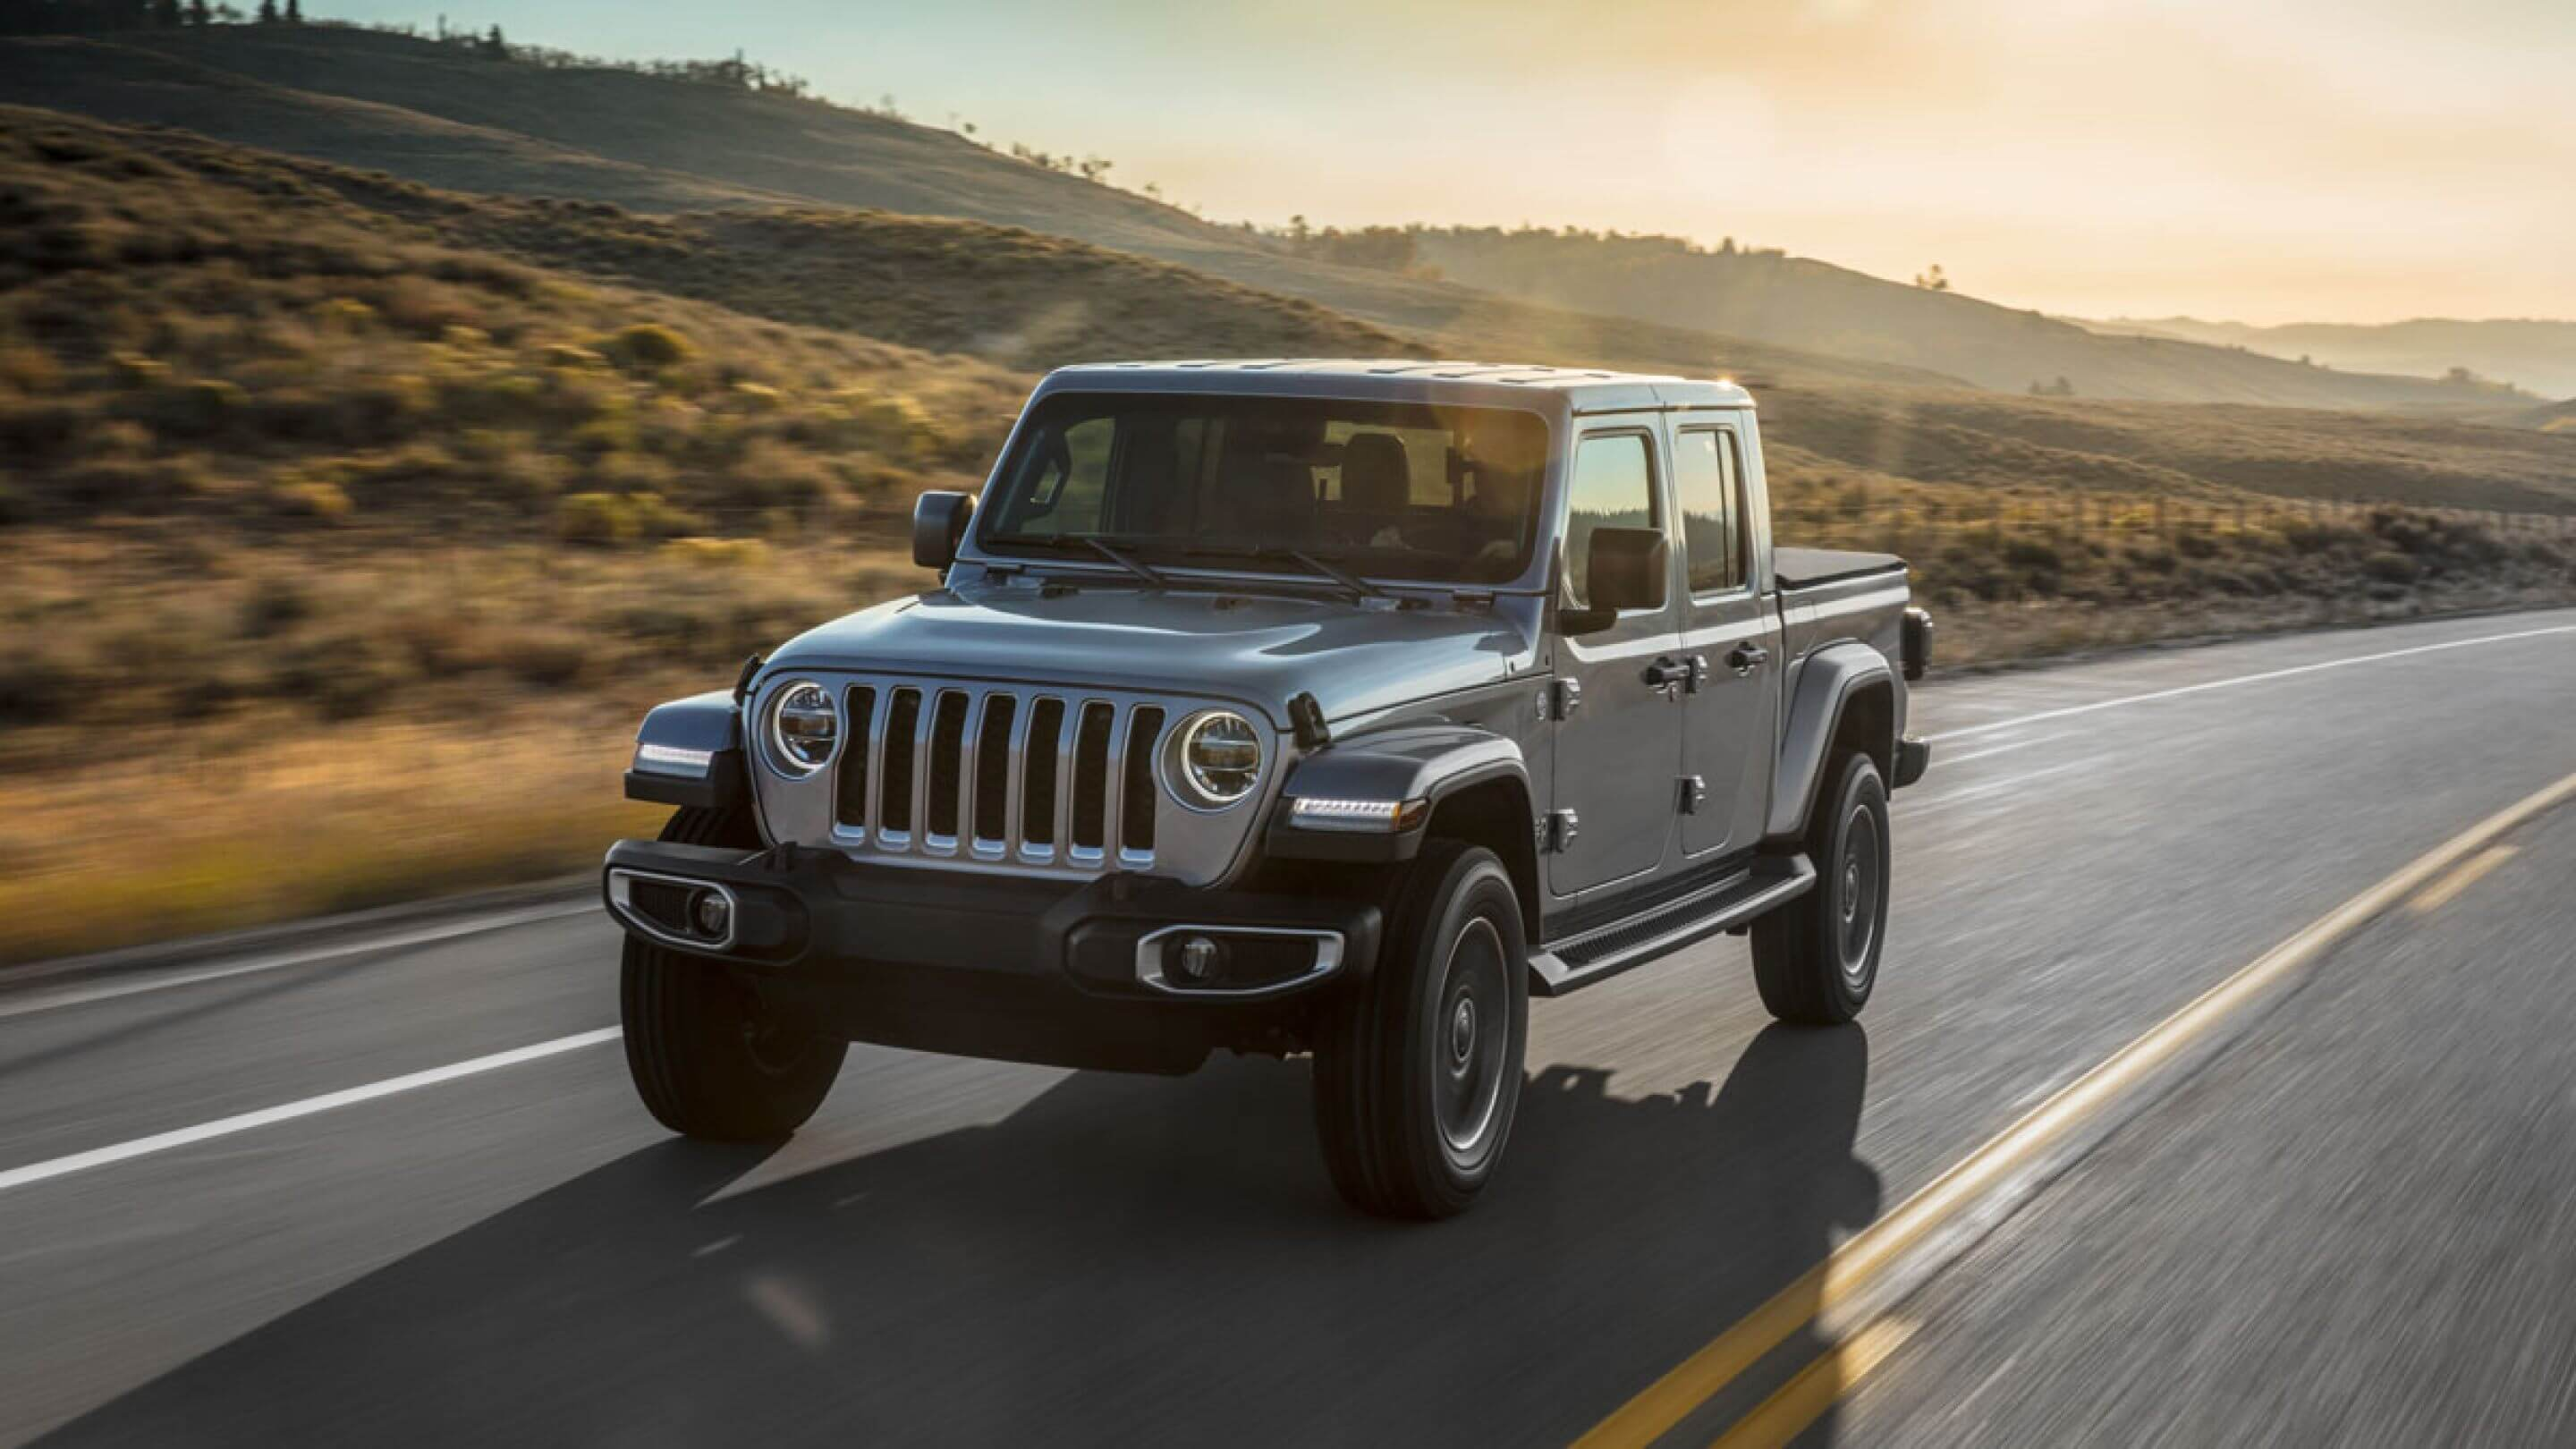 2020 Jeep Gladiator Review Specs And Pricing Wallace Chrysler Jeep Dodge Ram Blog